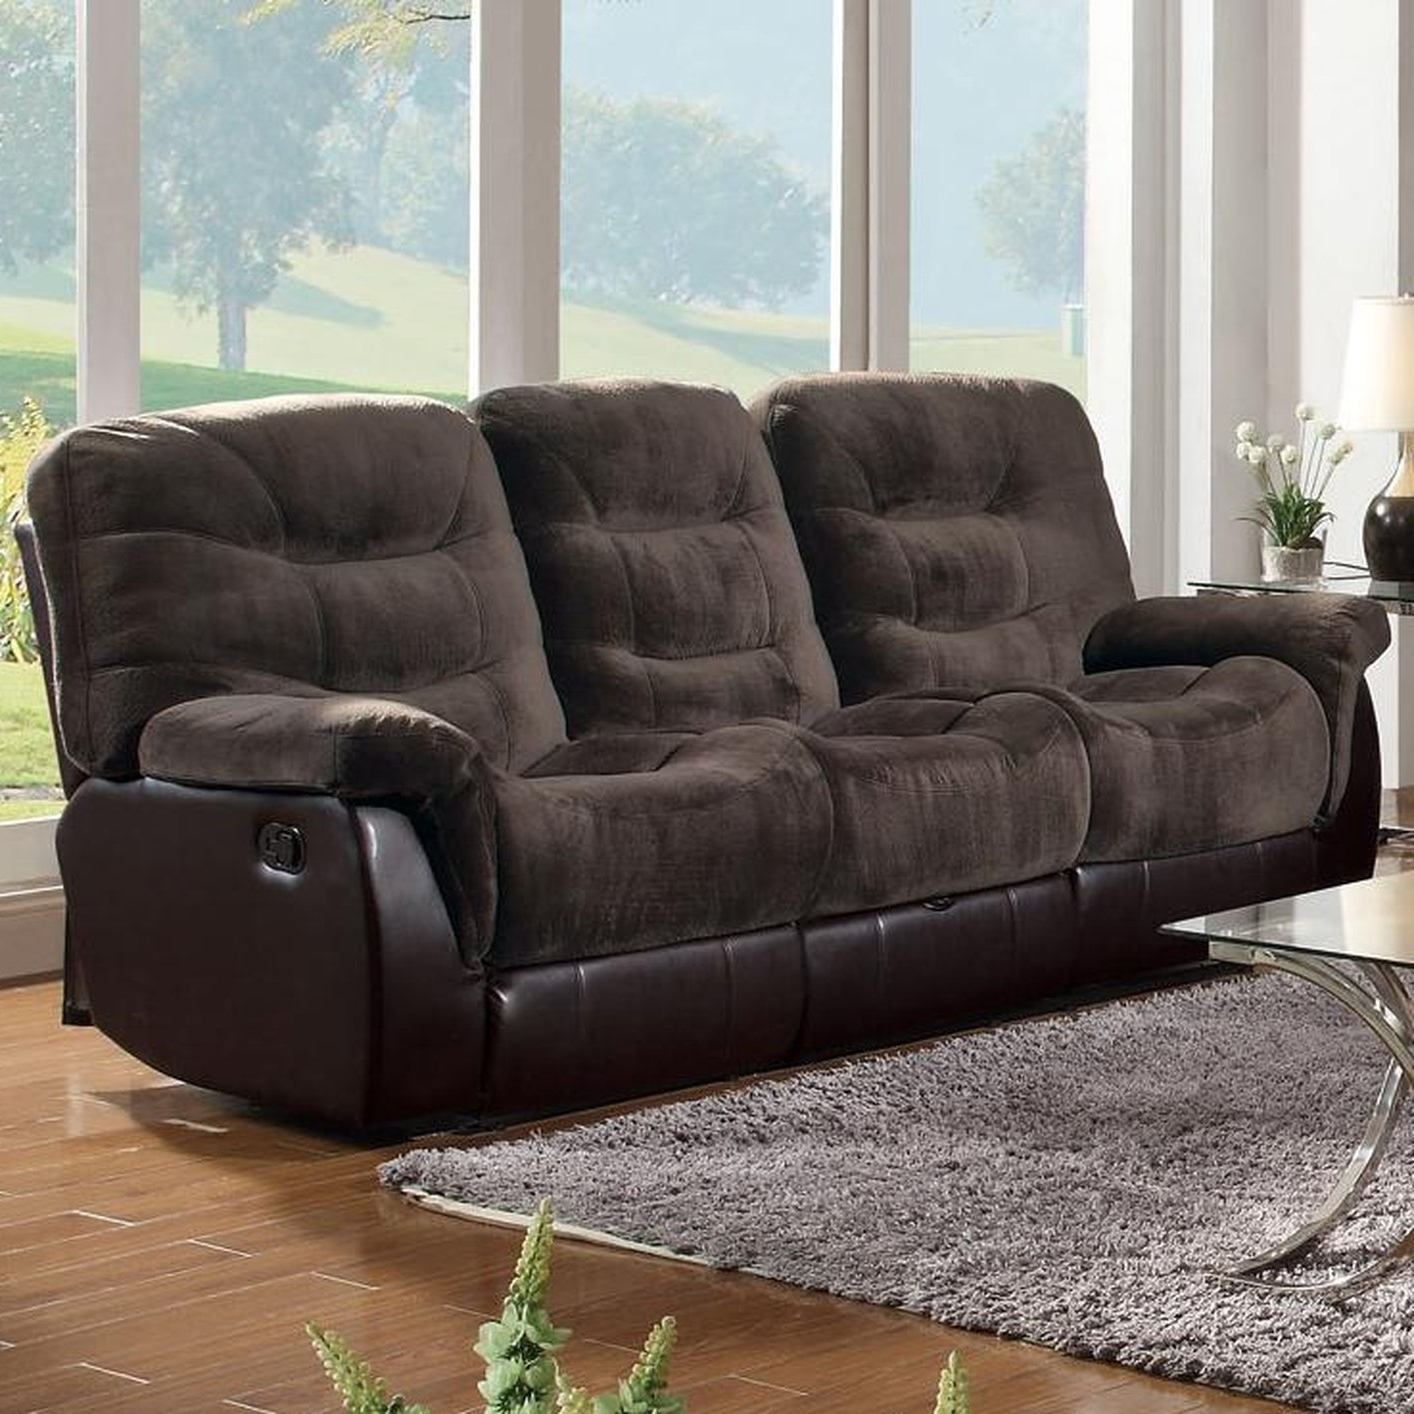 Sofa : Fabric Sectional Sofa With Power Recliner Fabric Recliner Within Well Known Jedd Fabric Reclining Sectional Sofas (View 2 of 15)